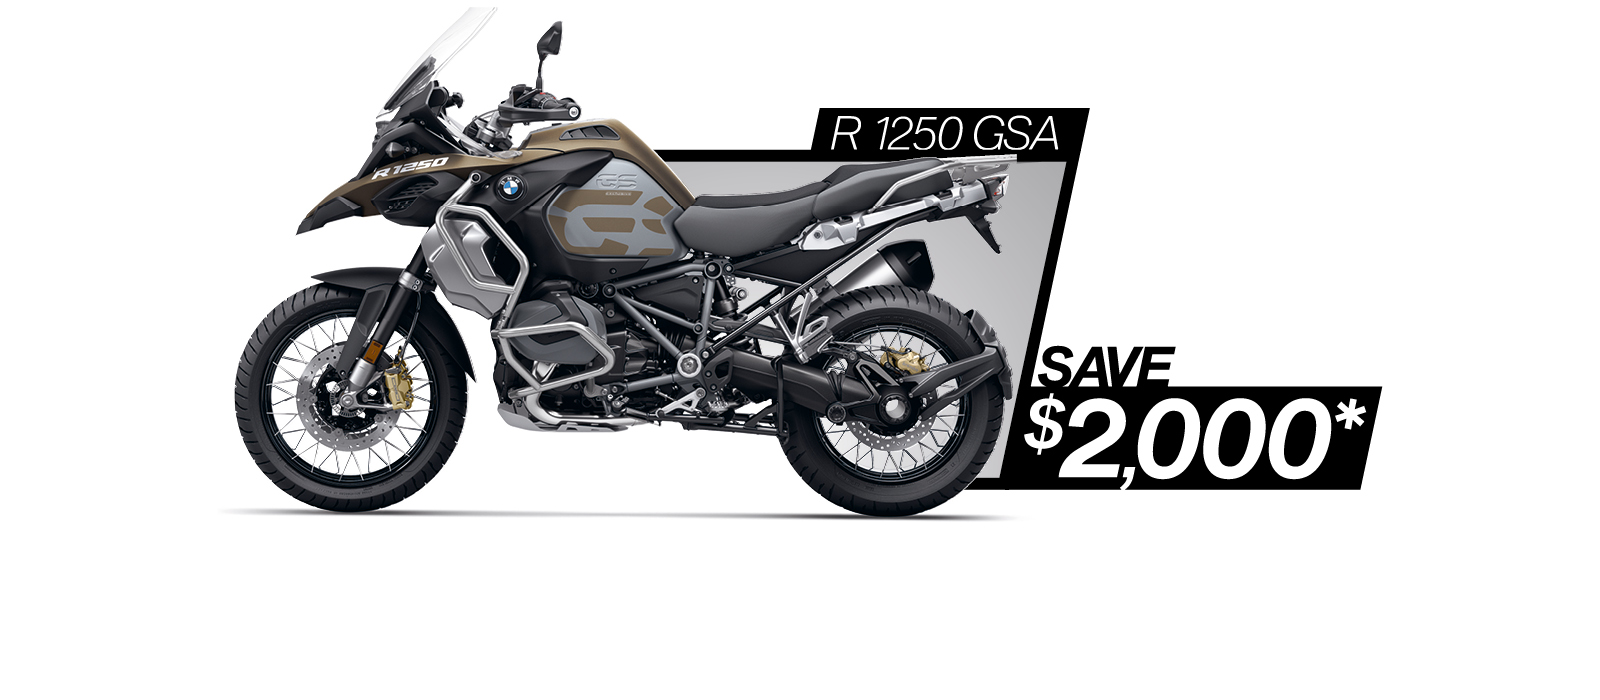 R 1250 GSA on sale